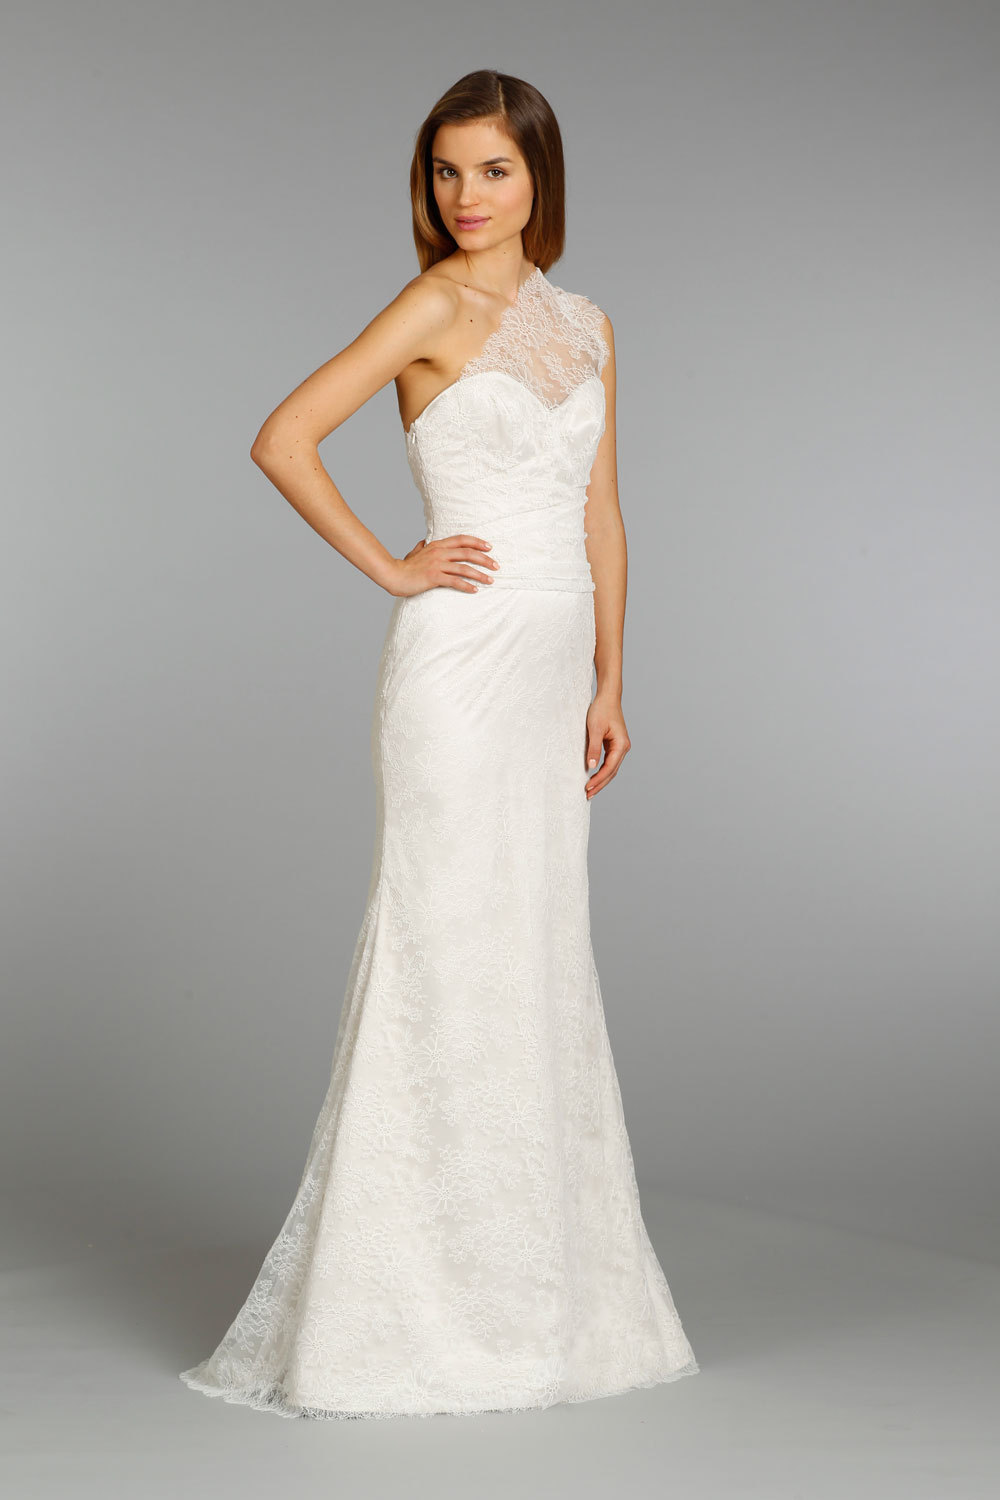 Jim hjelm wedding dress fall 2013 bridal 8357 for Jim hjelm wedding dresses